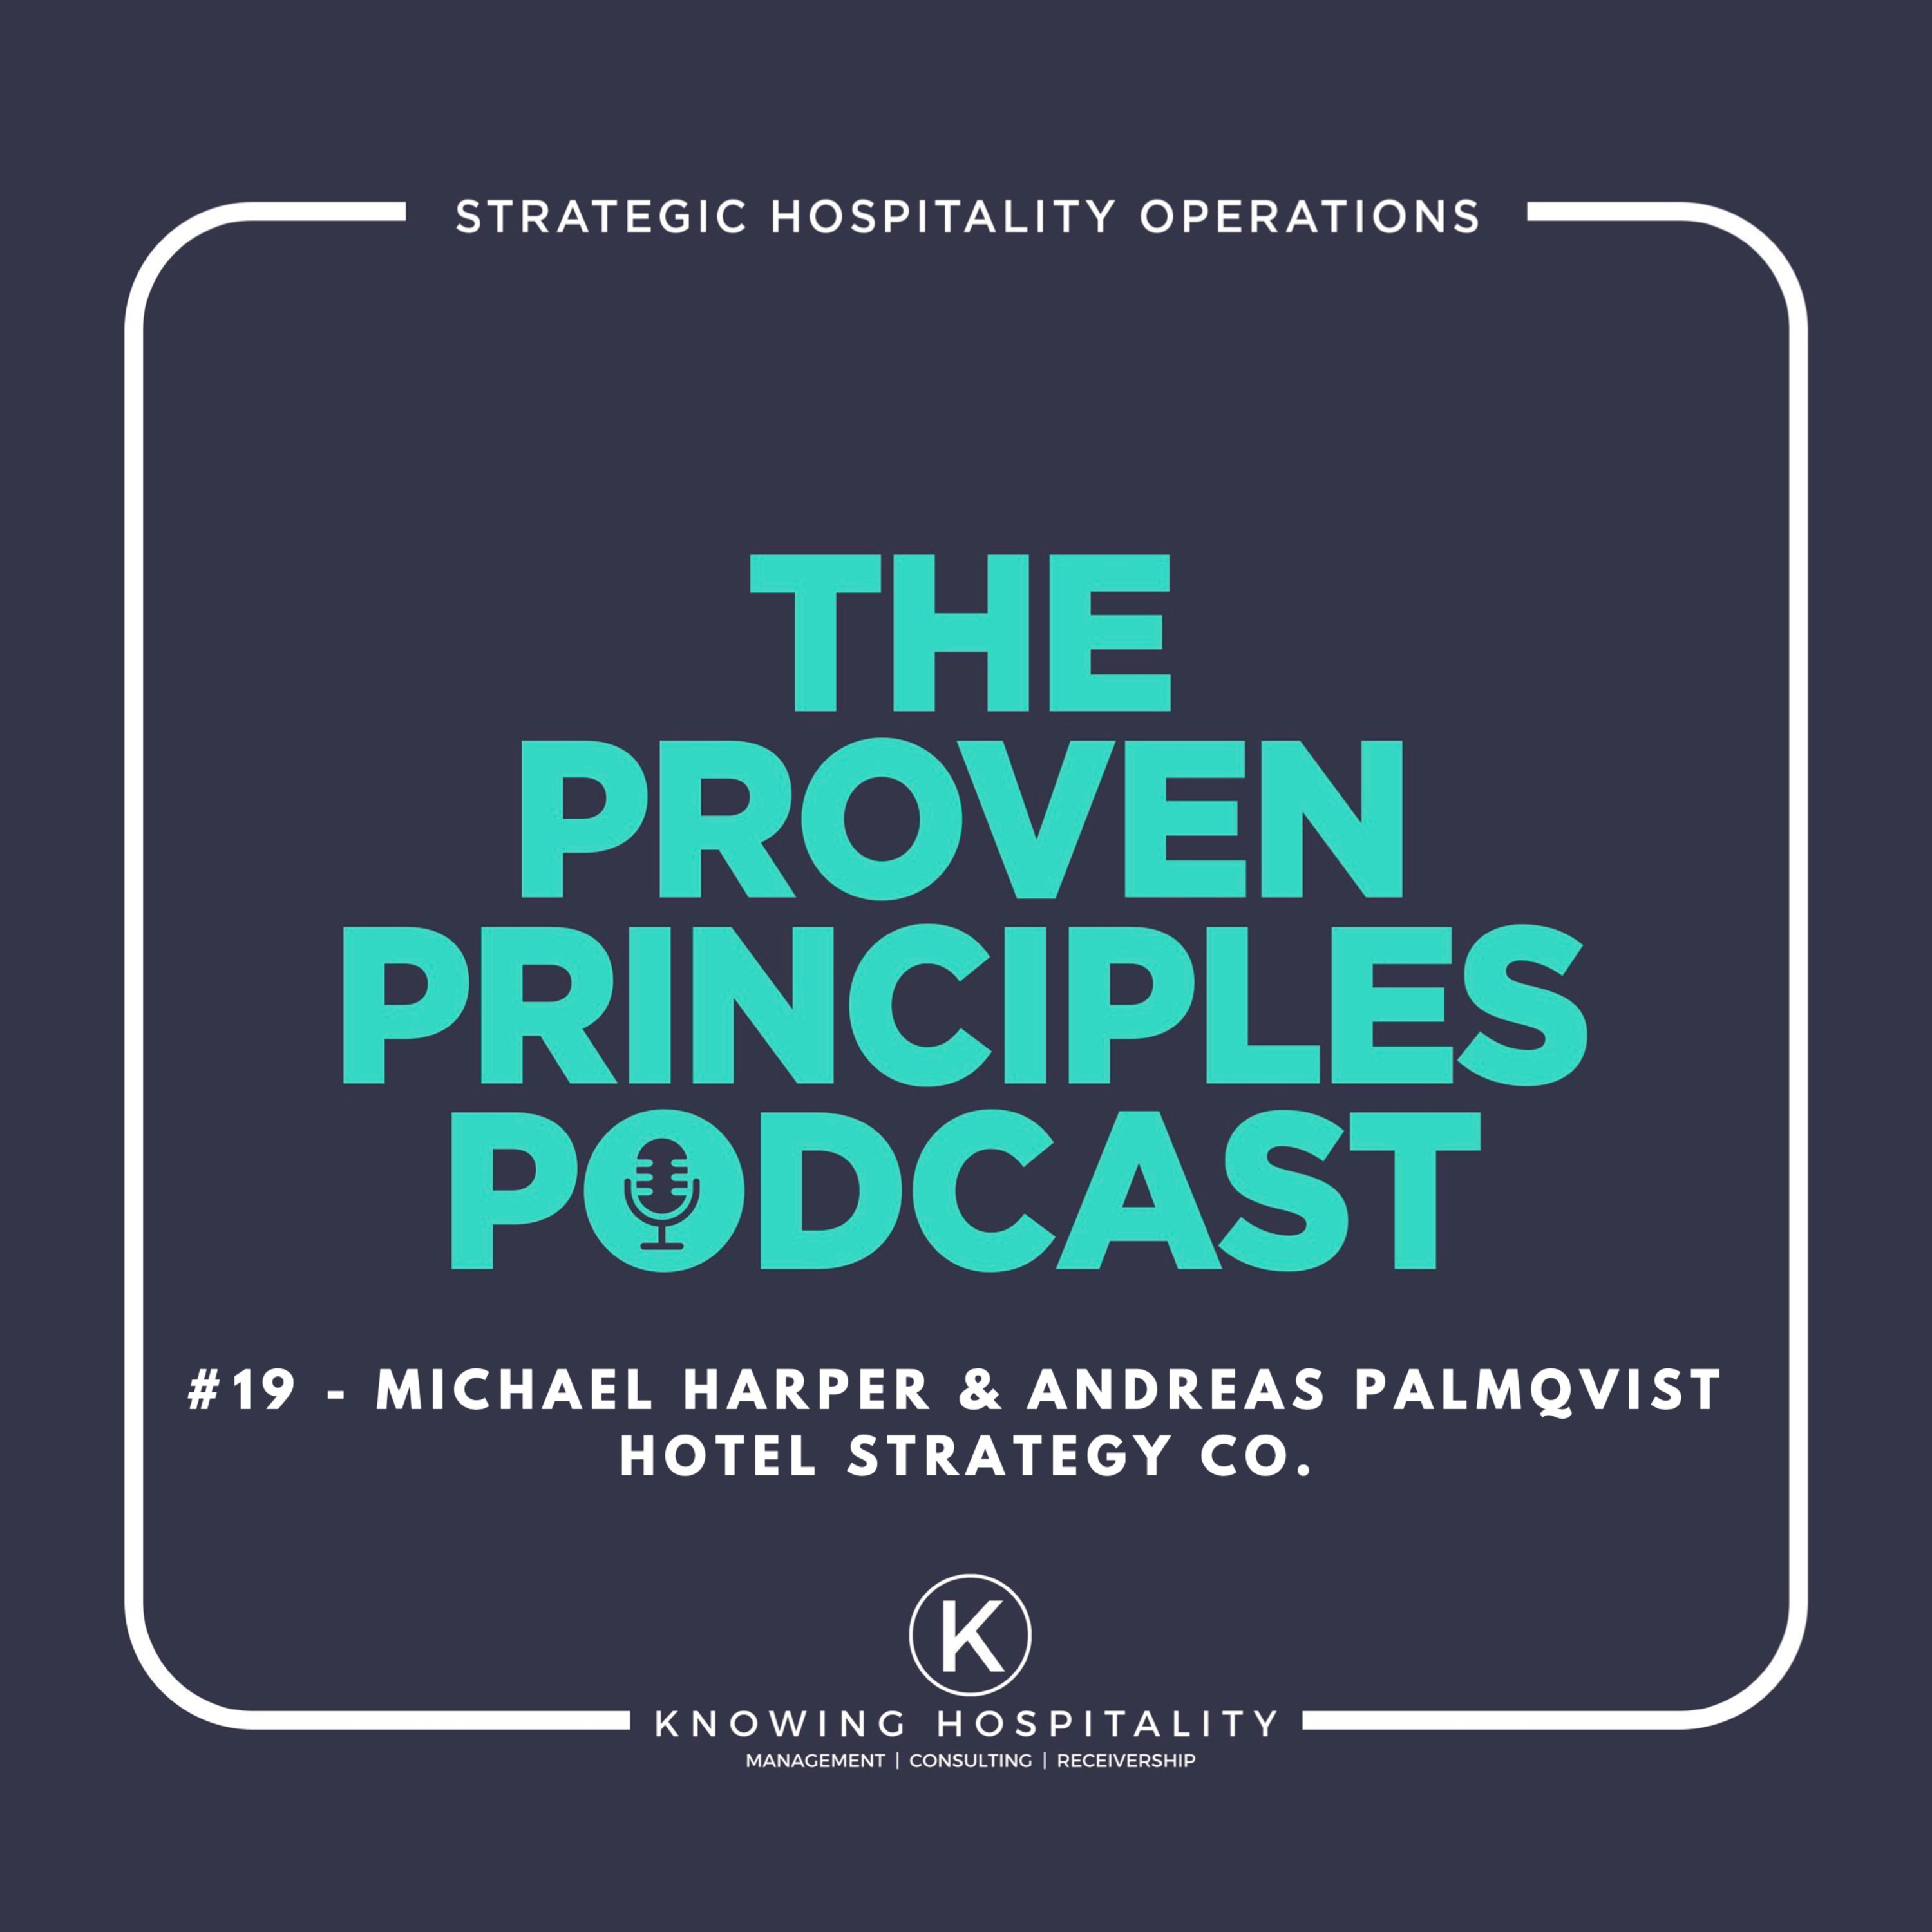 #19: Michael Harper & Andreas Palmqvist - On Hotel Strategy, Performance Hacking and Growing Your Business